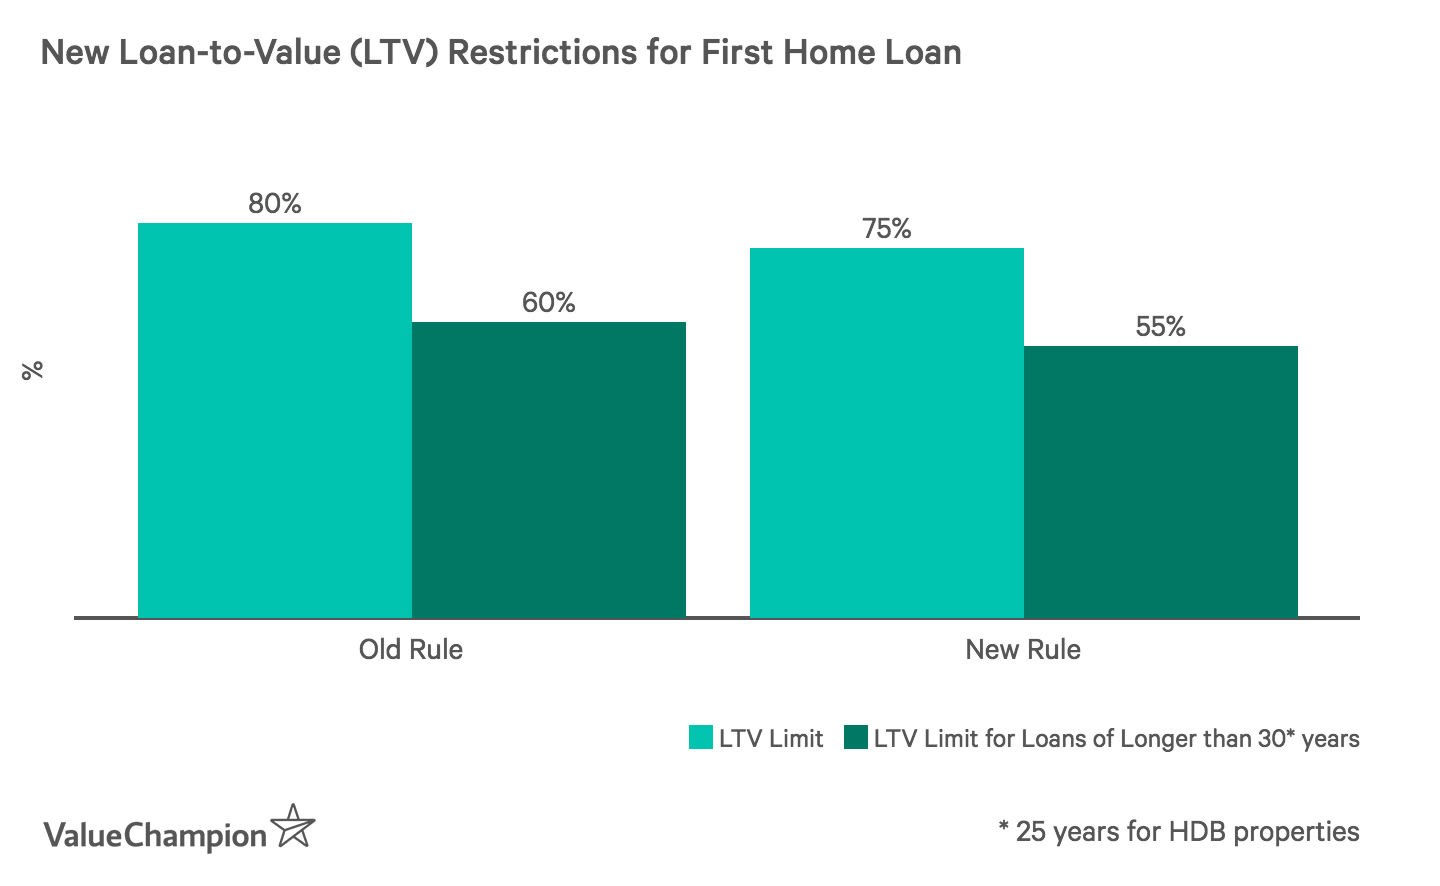 New Loan-to-Value (LTV) Restrictions for First Home Loan